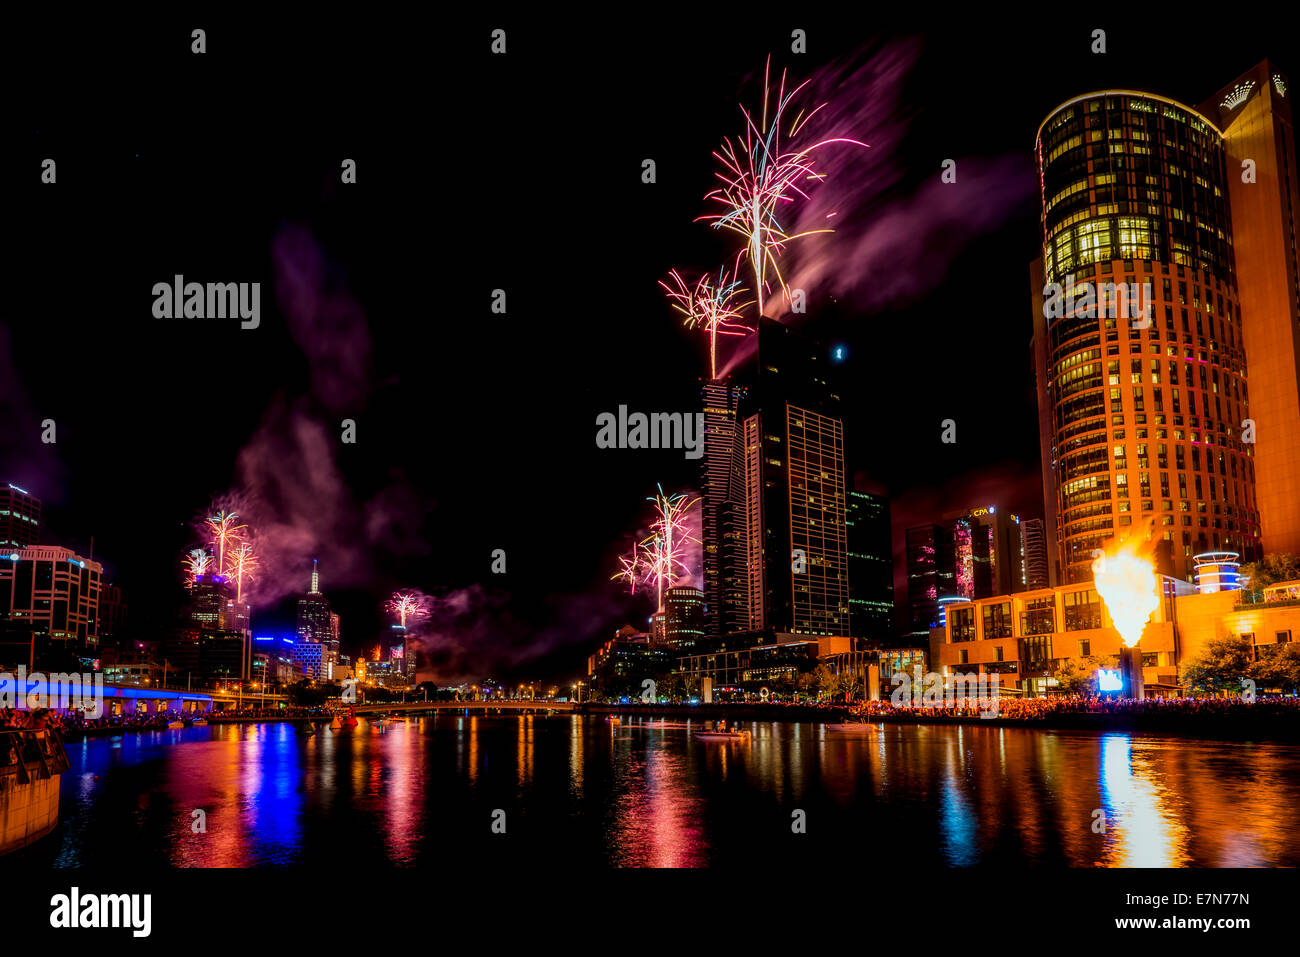 Spectacular fireworks along the Yarra River light up the night sky over Melbourne Australia. - Stock Image